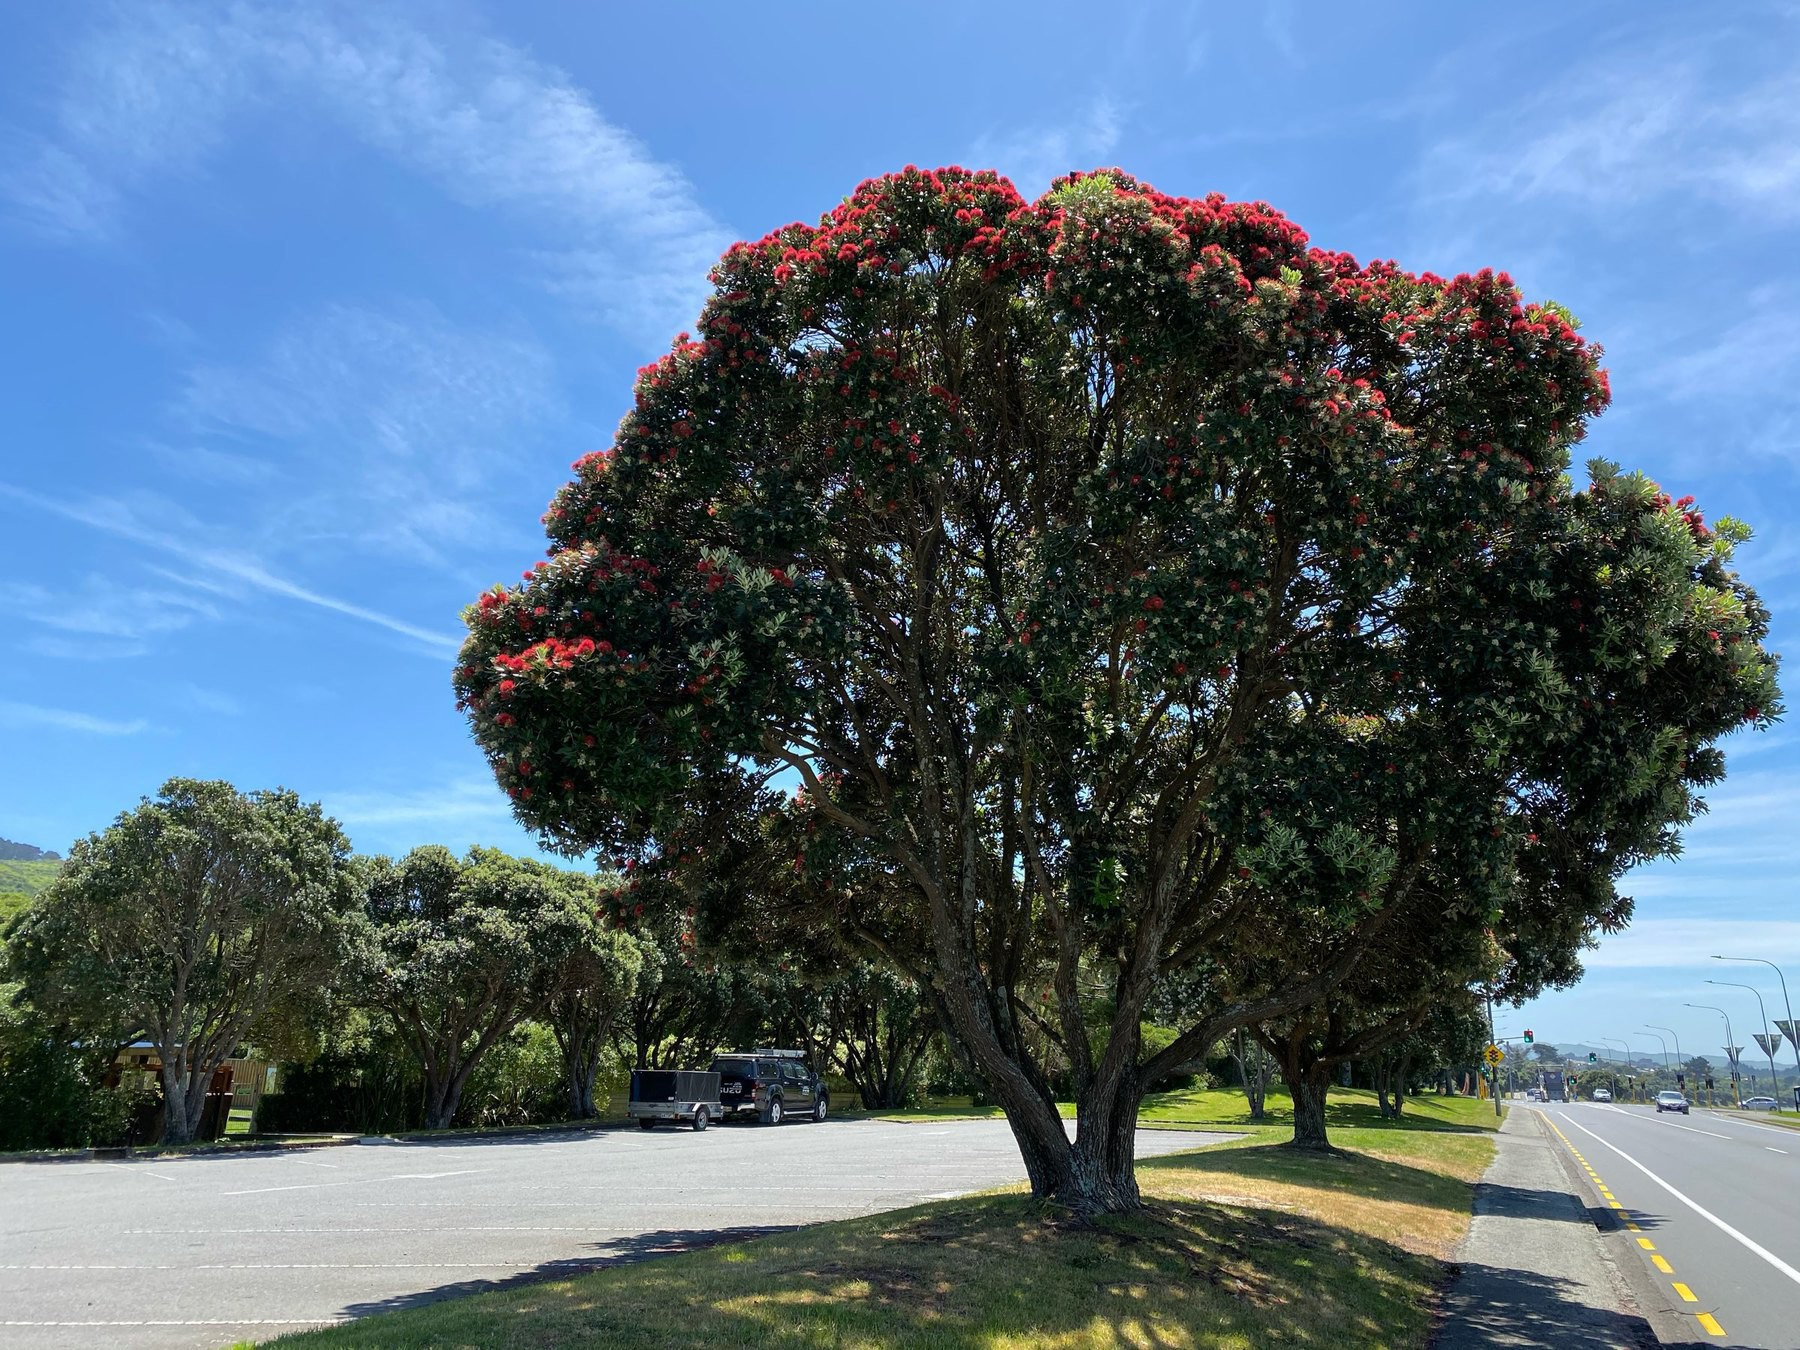 Large tree with red blooms.